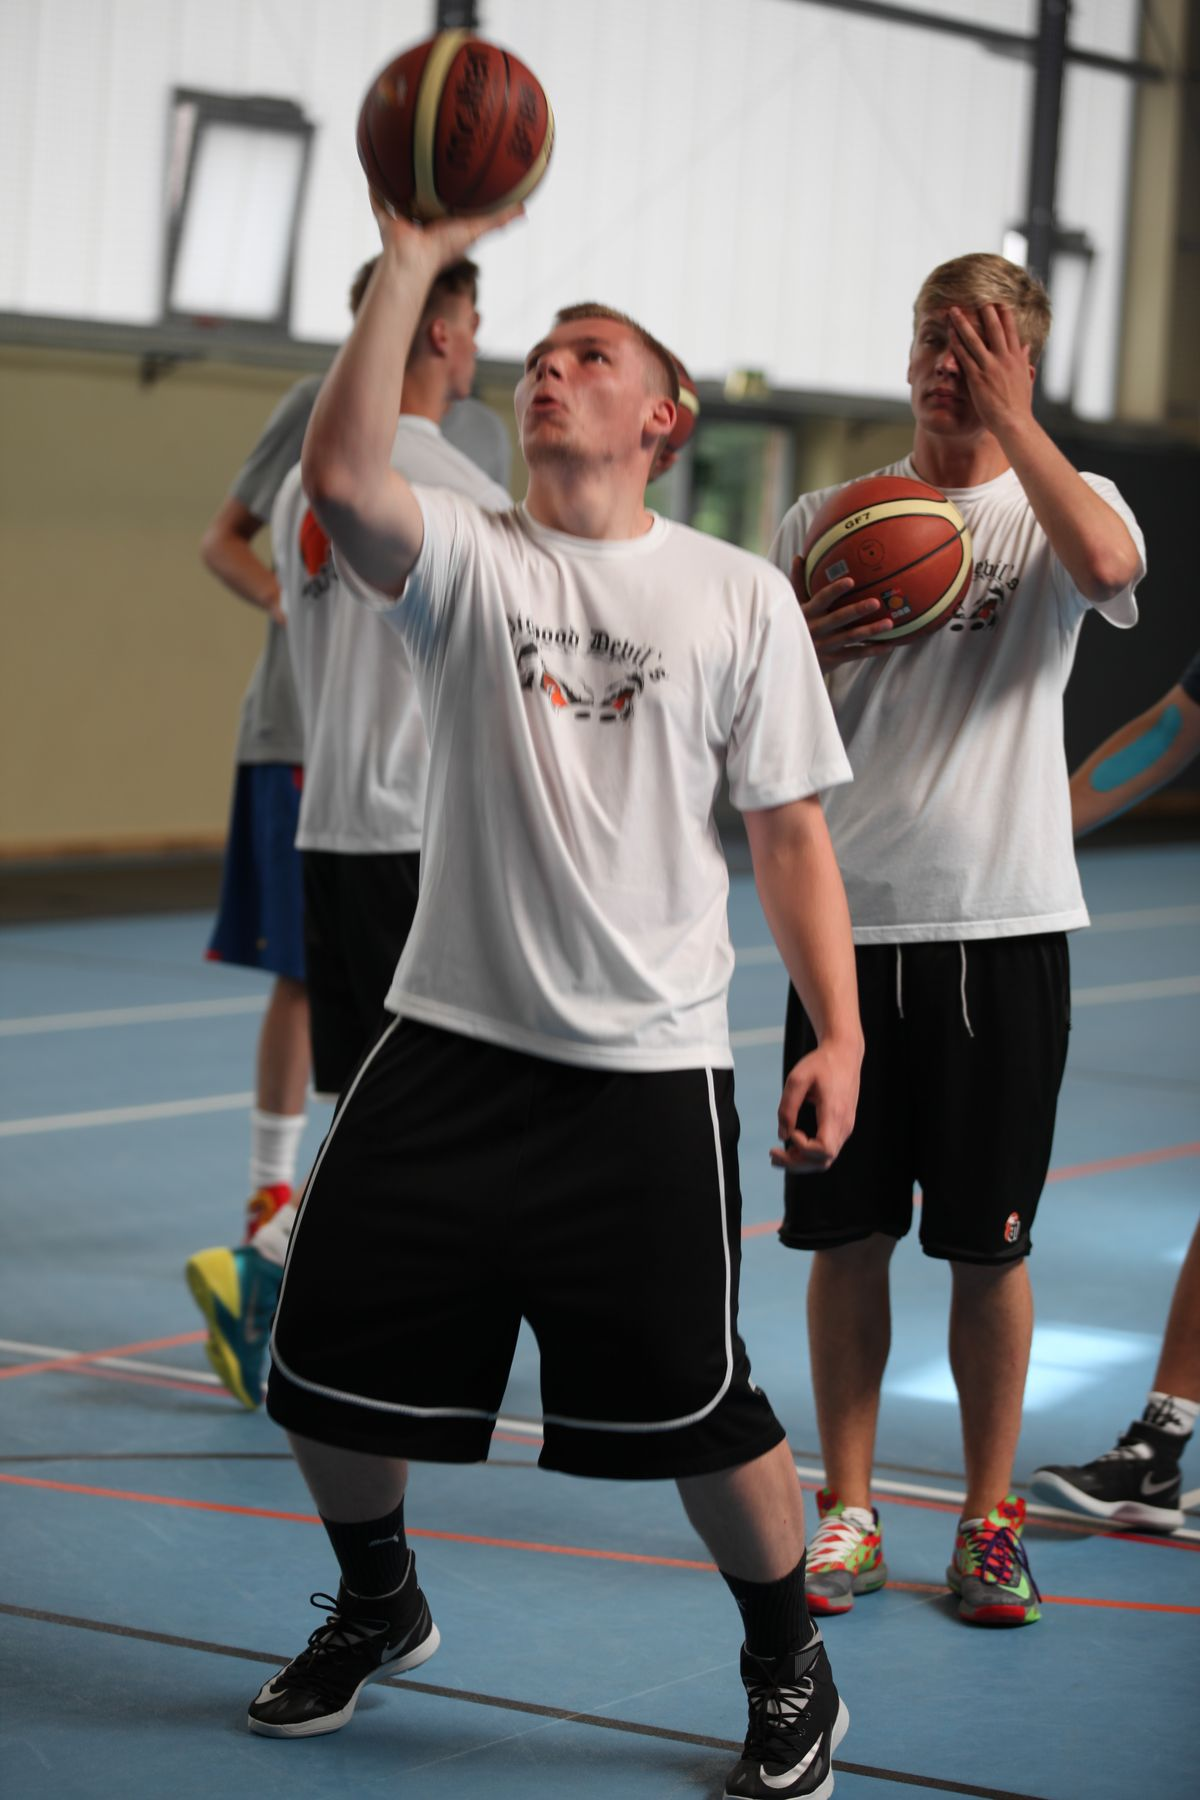 Sommer_BBall-Camp_2014_Tag 3 (3)